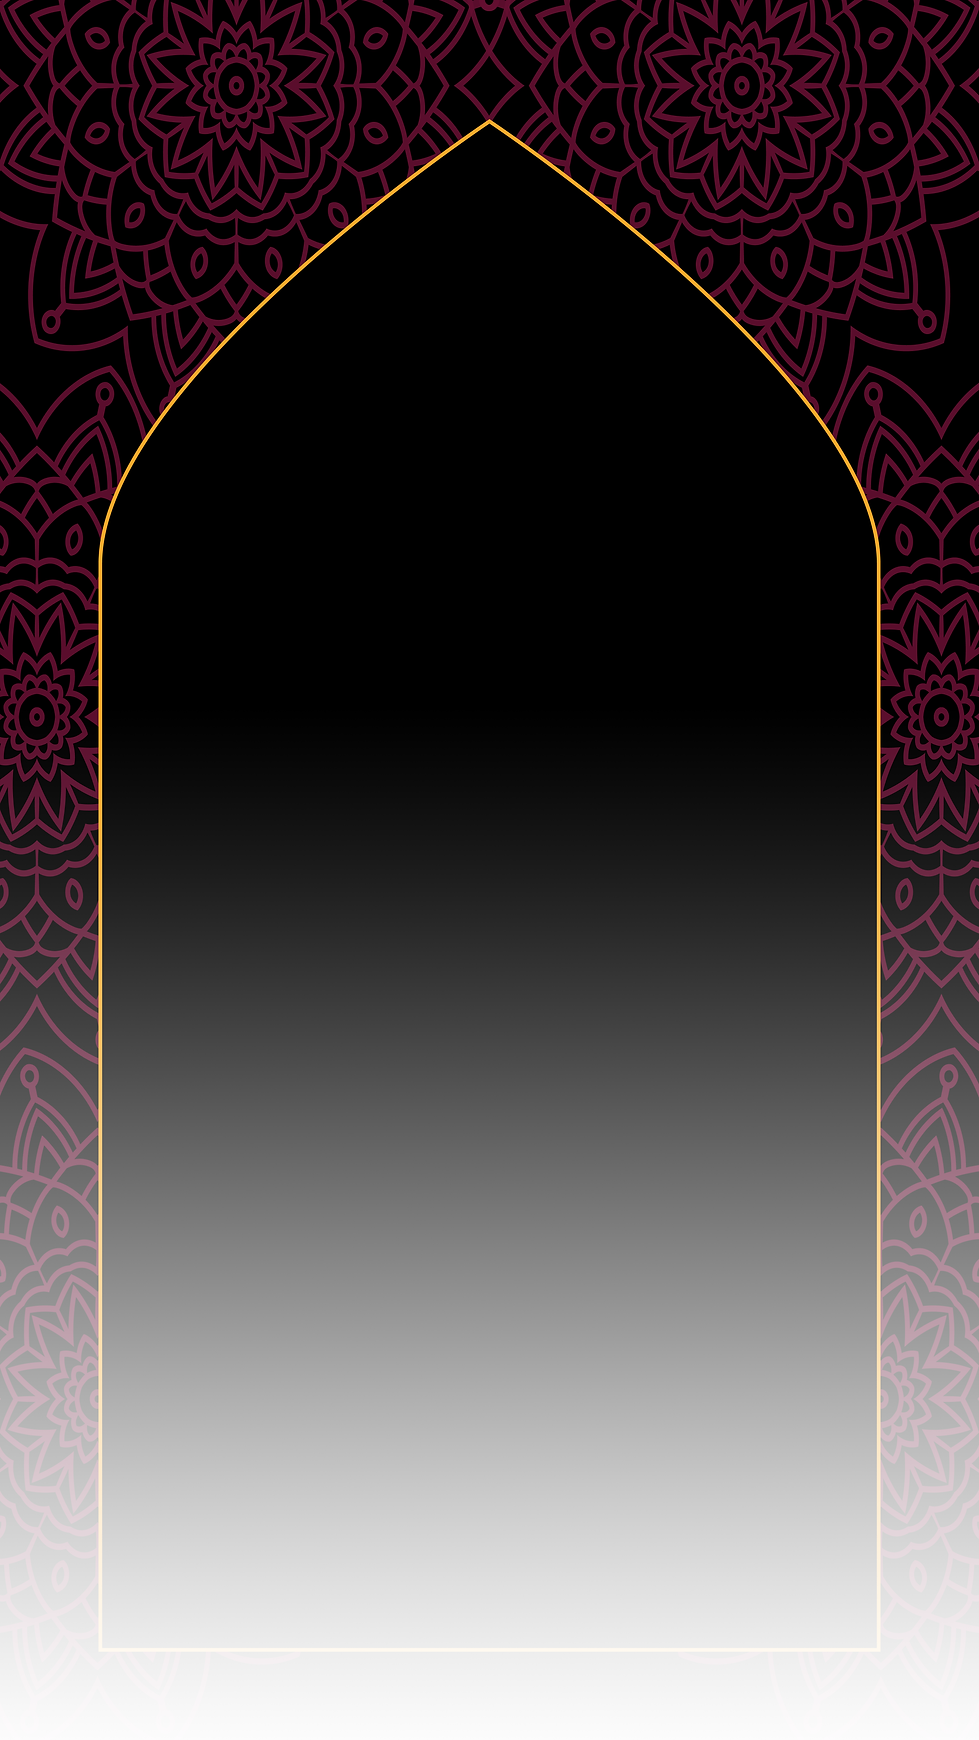 background 2nd page 2.png